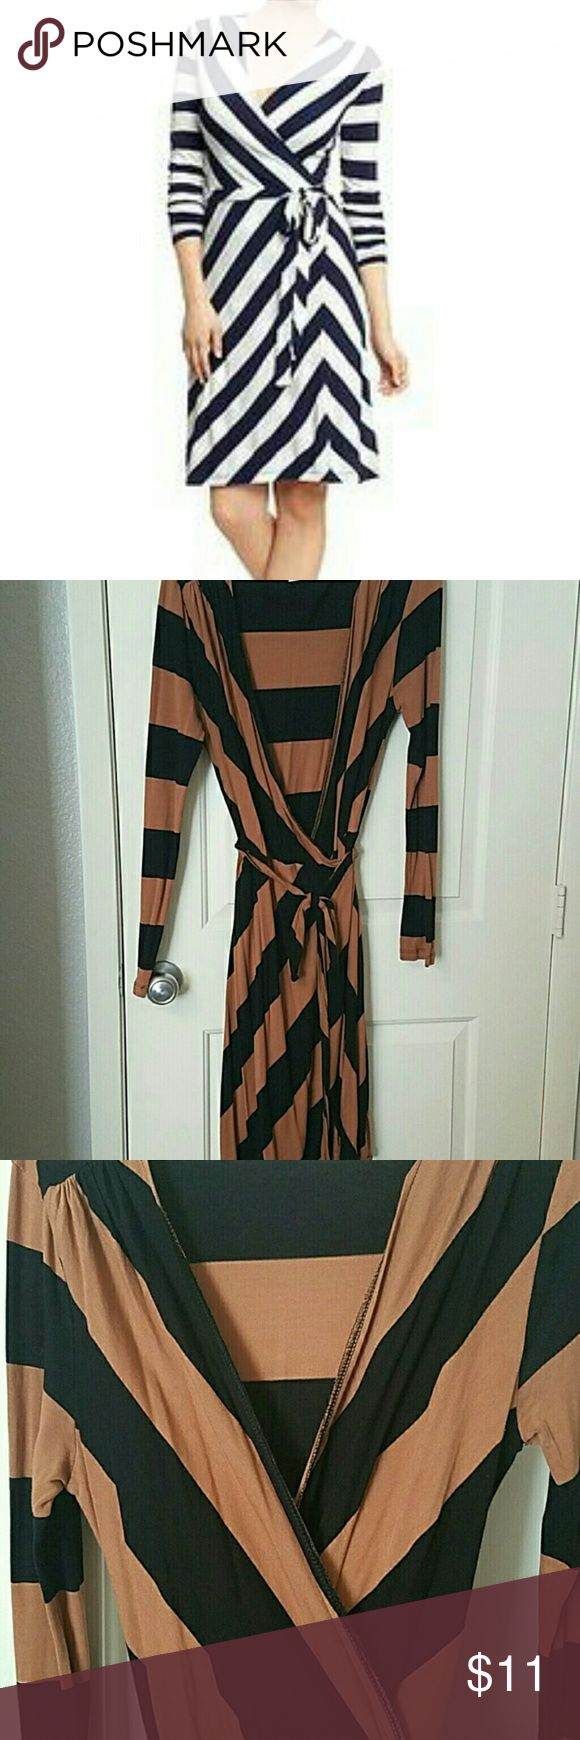 Old Navy Camel and Black Striped Wrap Dress First picture to show fit, actual colors are camel and brown. EUC, no defects. Long sleeve, wraps with tie around waist, knee-length. Flattering! Measurements upon request. Open to reasonable offers. Thanks for looking! Old Navy Dresses